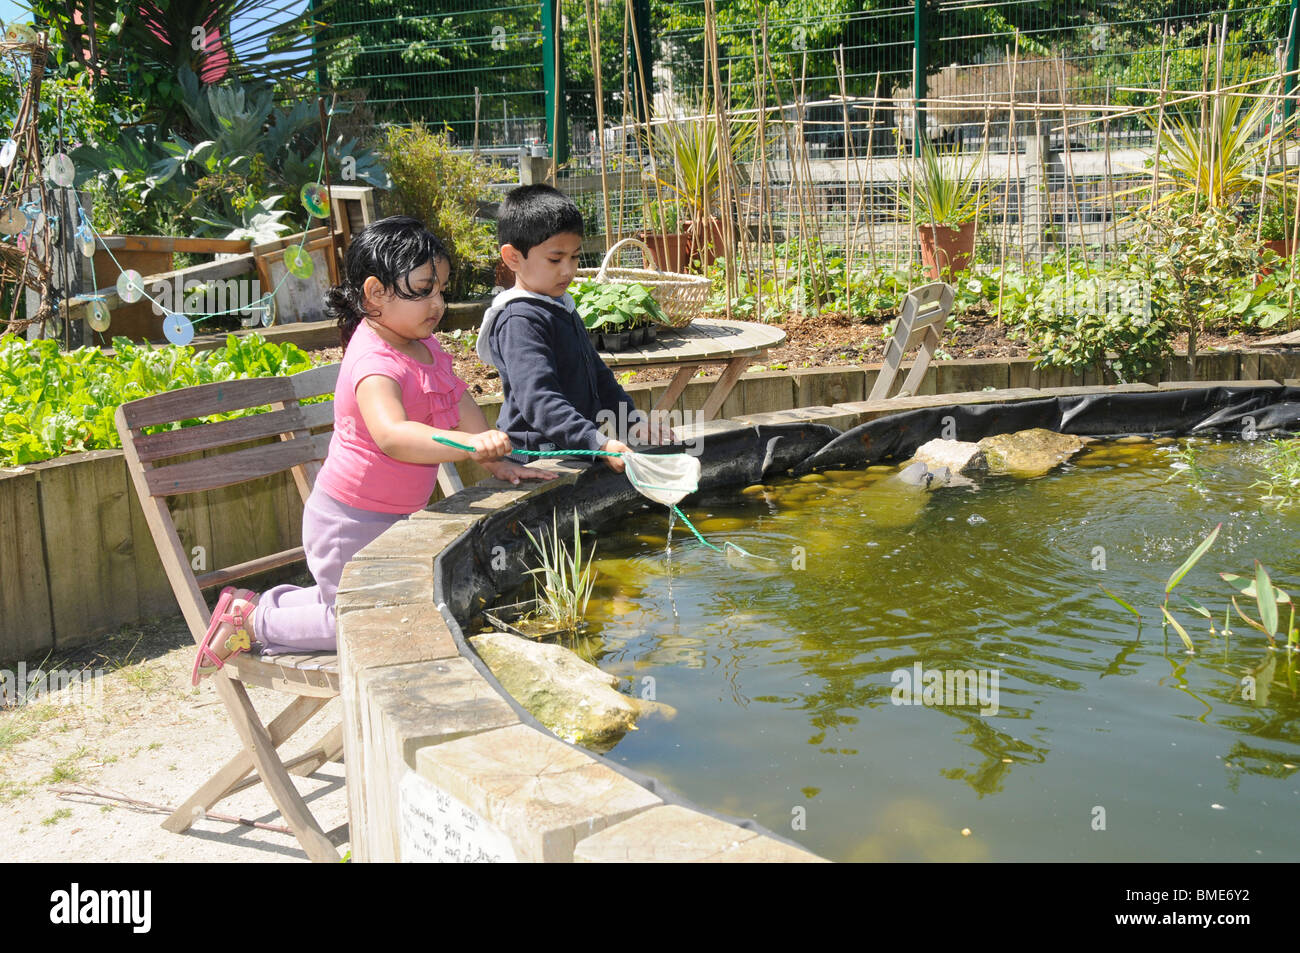 UK BENGALI CHILDREN PLAYING AT POND AT SPITALFIELDS CITY FARM IN LONDON - Stock Image